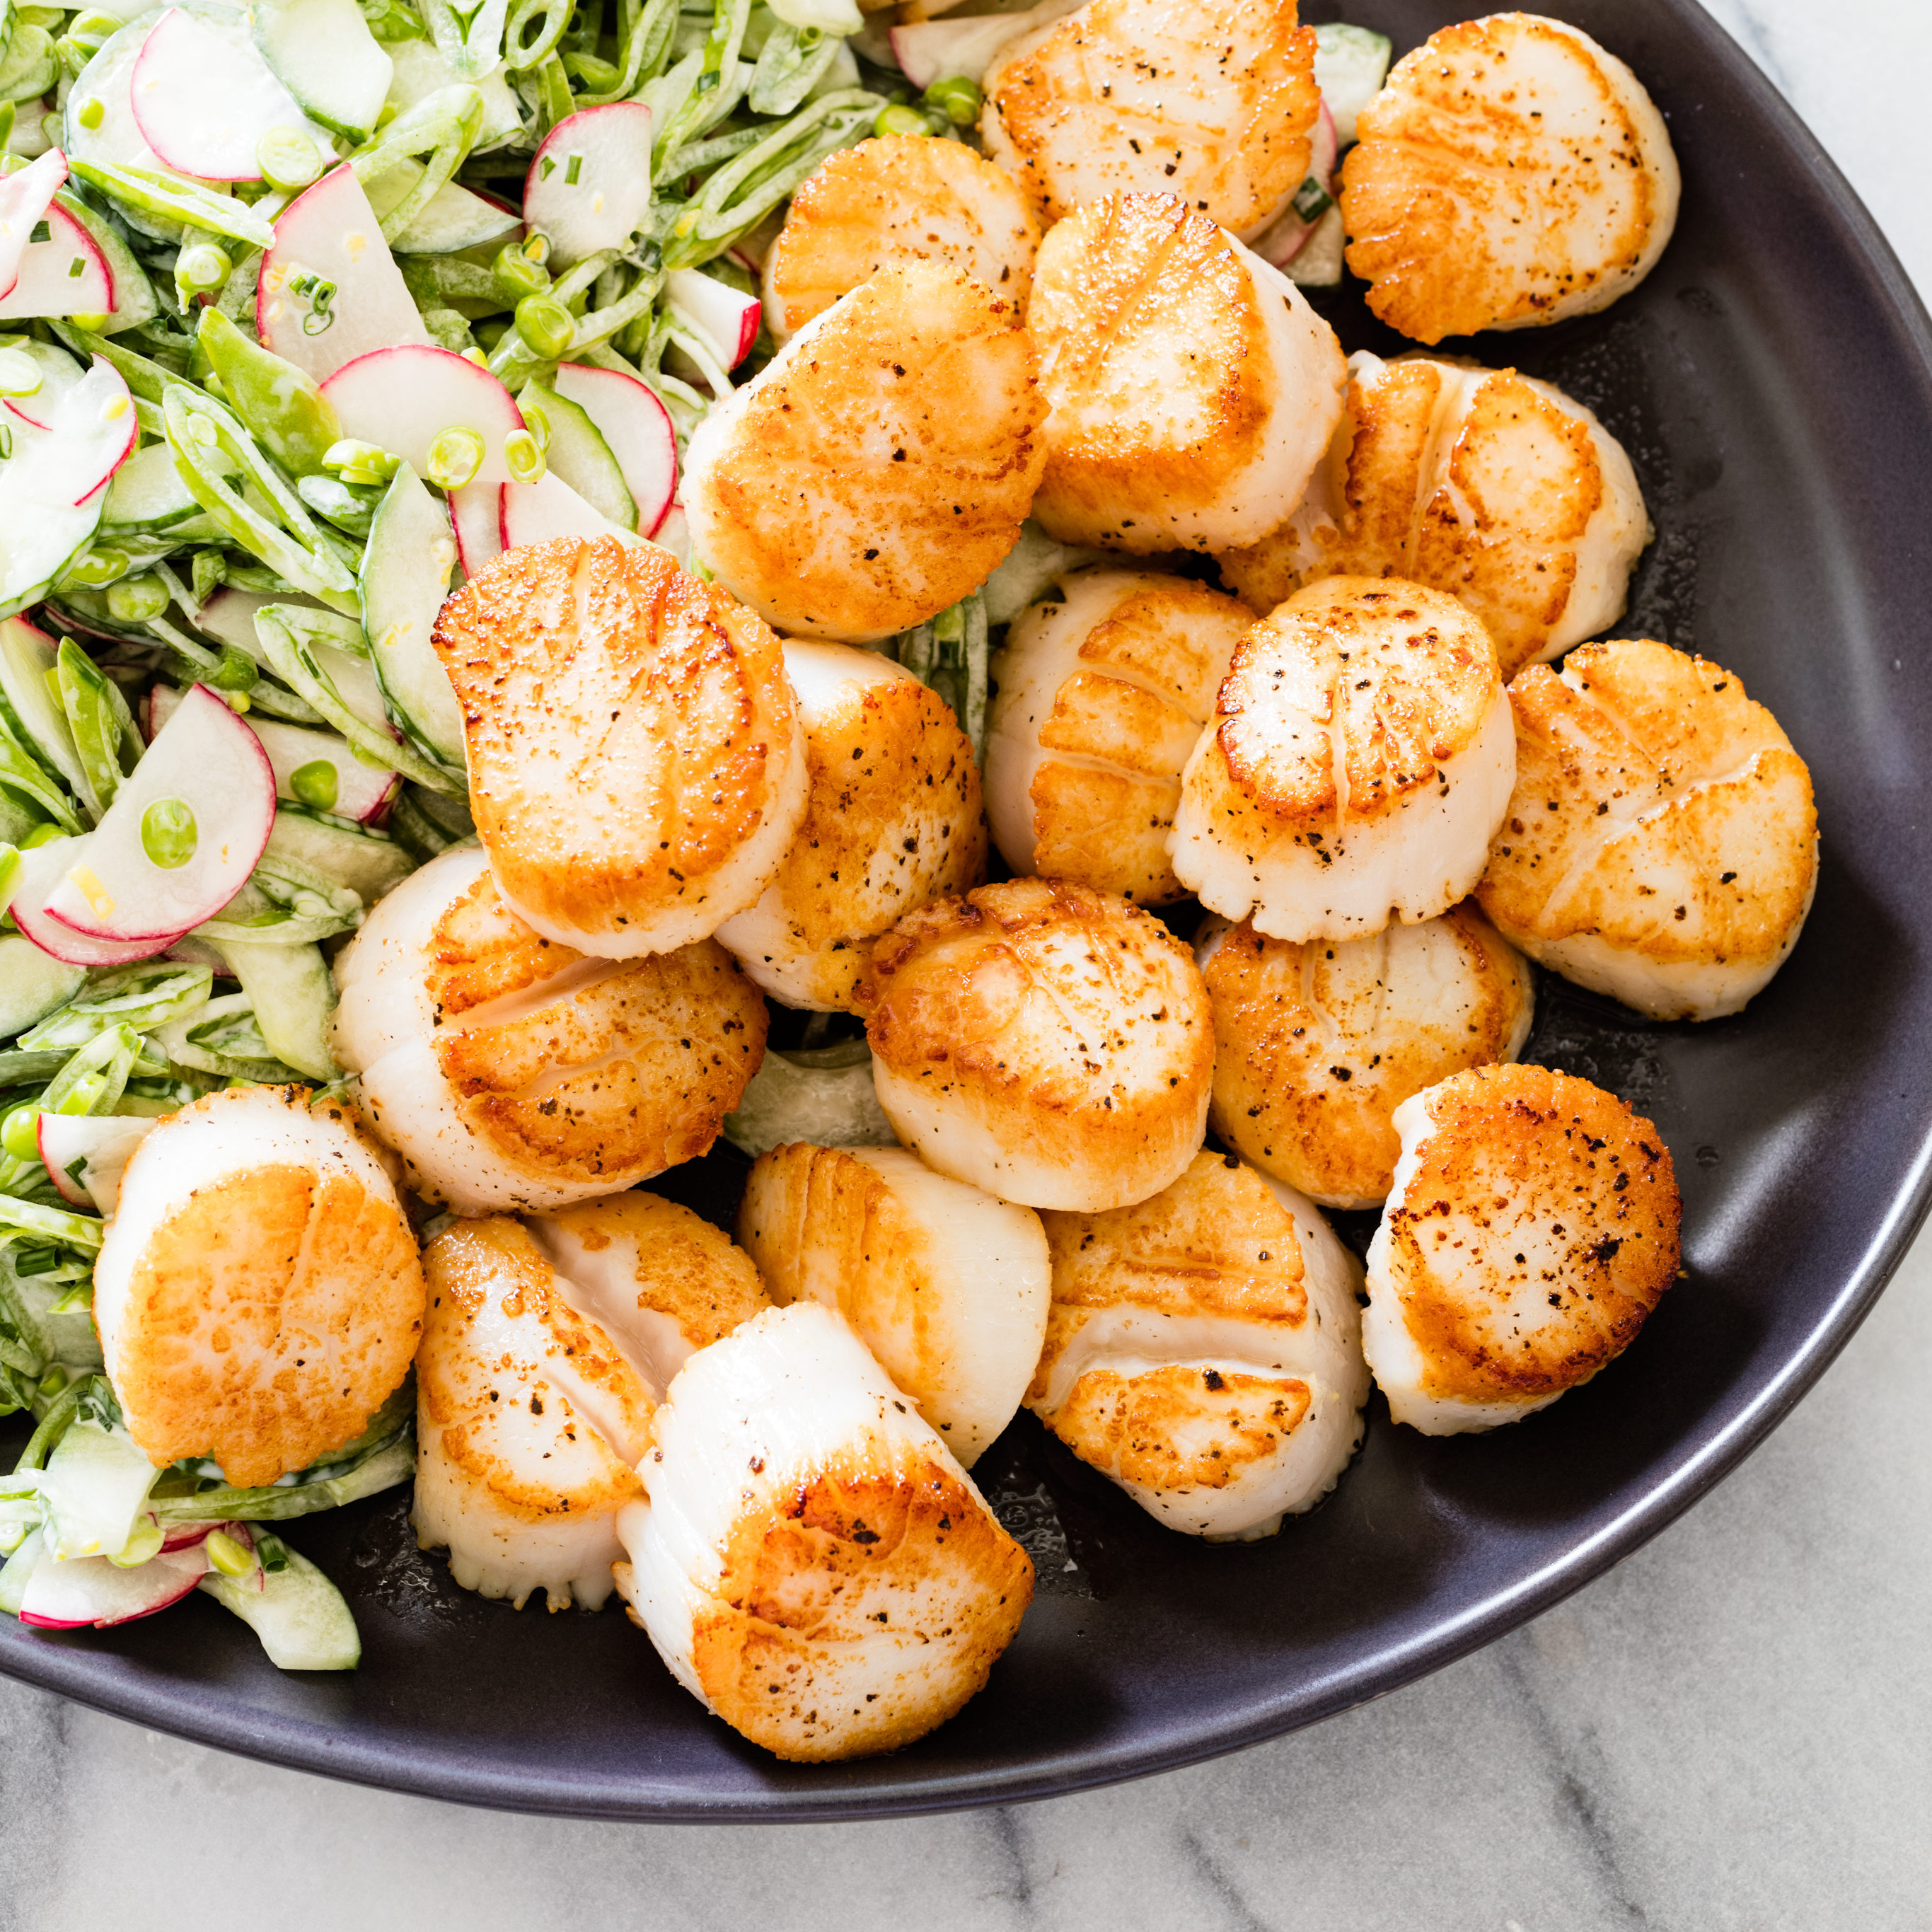 Pan-Seared Scallops with Sugar Snap Pea Slaw Recipe - Cook's Country